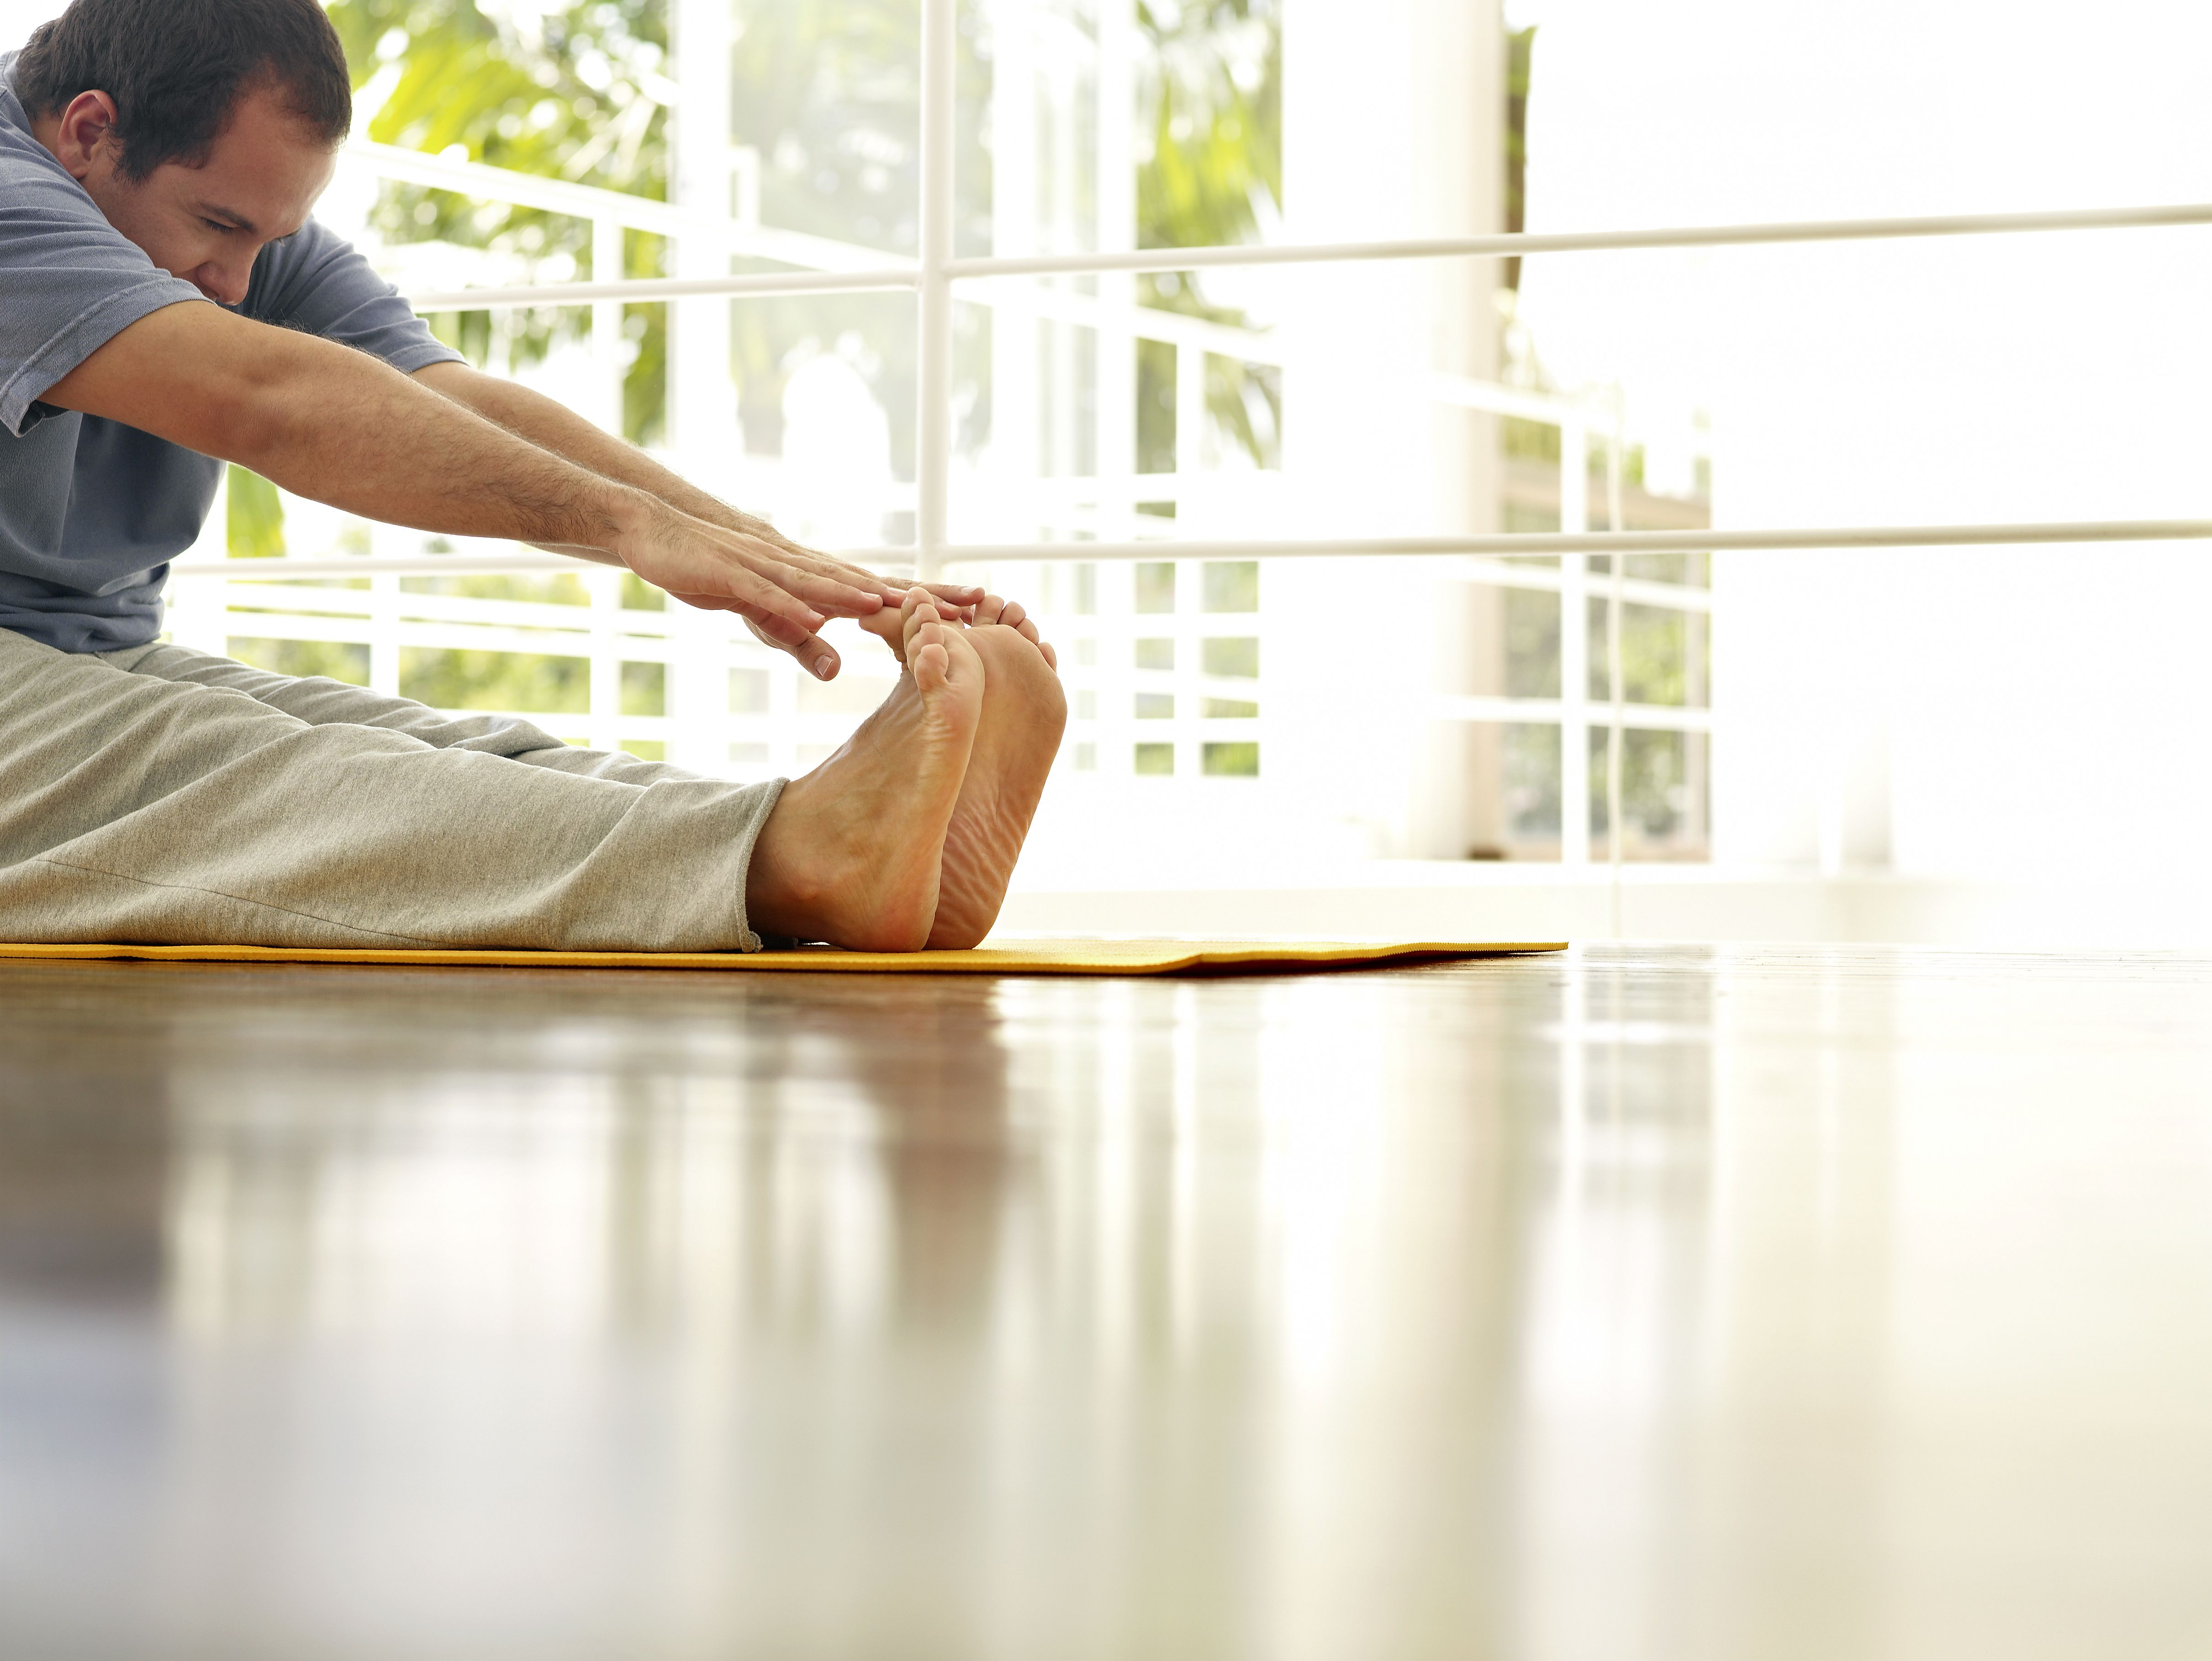 Man stretching in the house, working out to lose weight